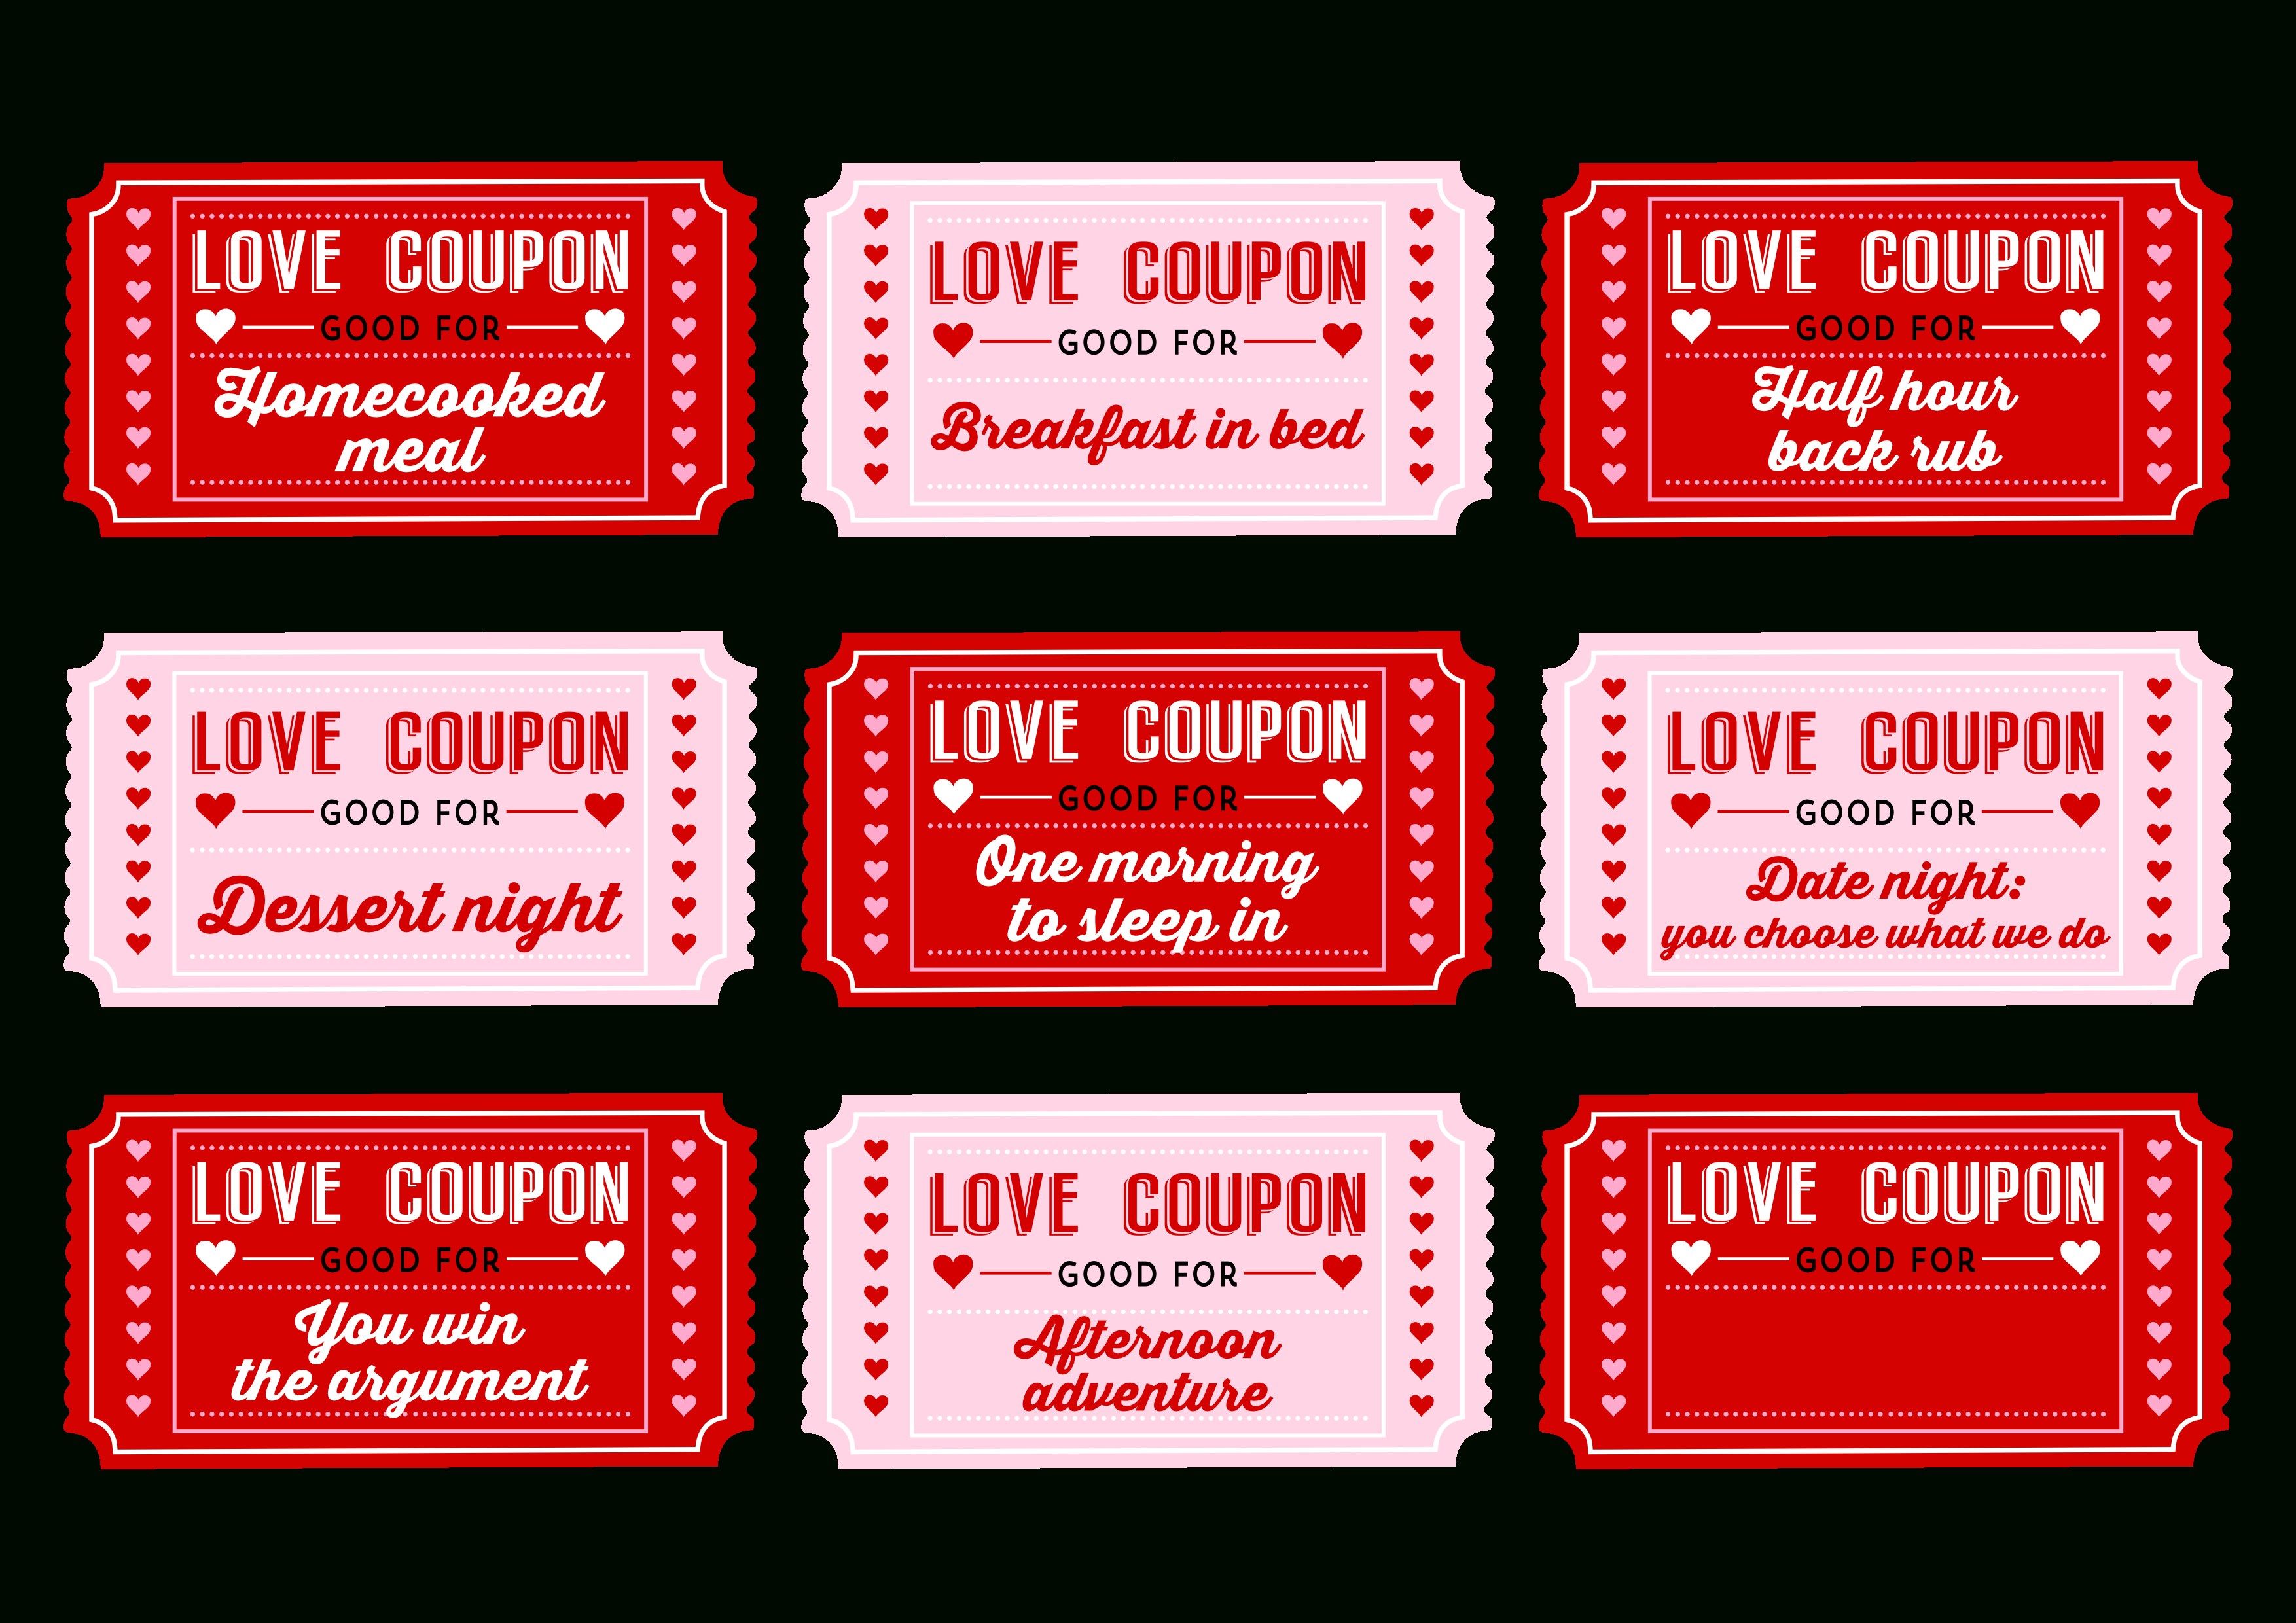 Free Printable Love Coupons For Couples On Valentine's Day! | Catch - Free Printable Valentines Day Coupons For Boyfriend